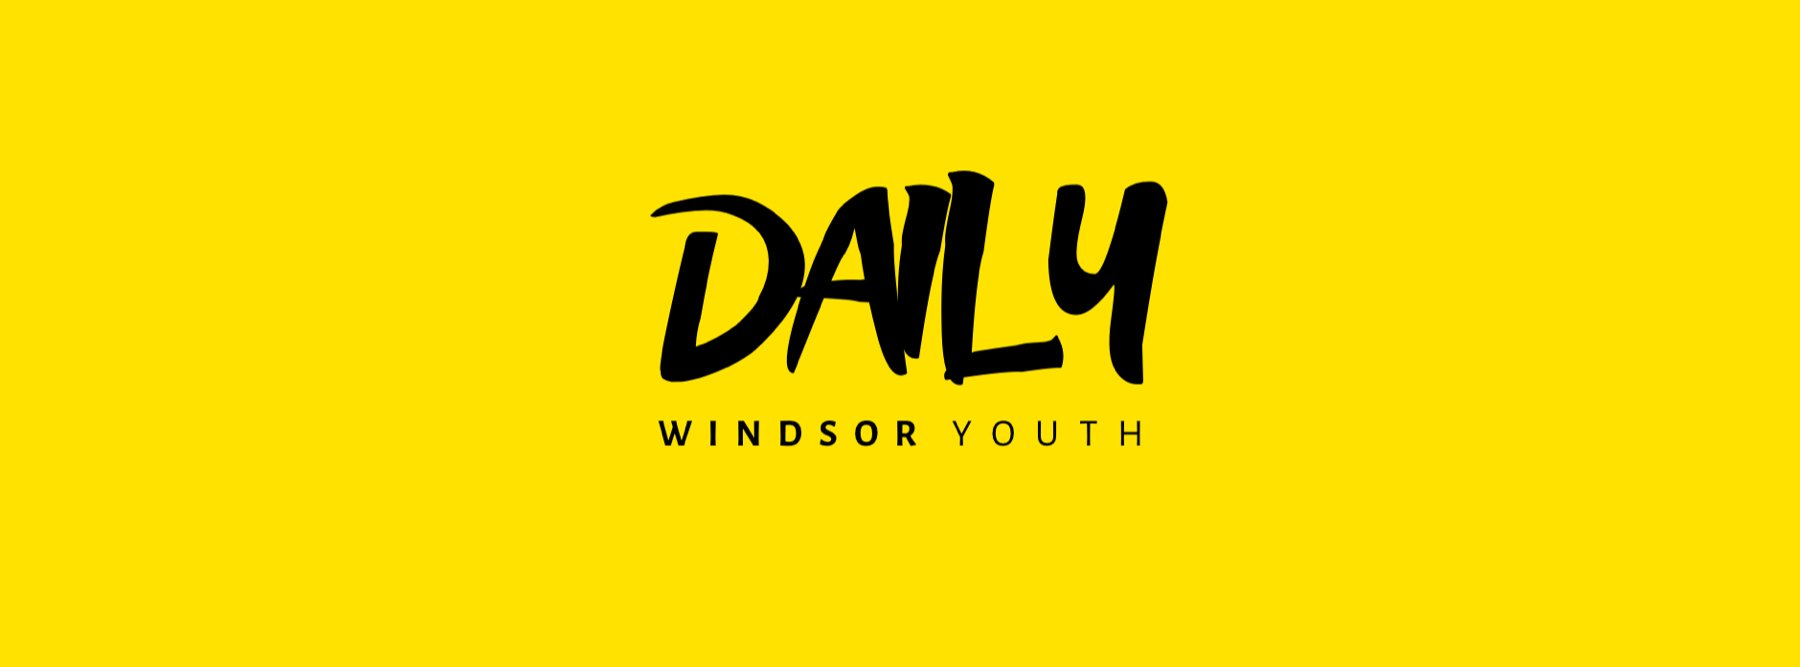 The Windsor Youth Daily podcast logo on a yellow background